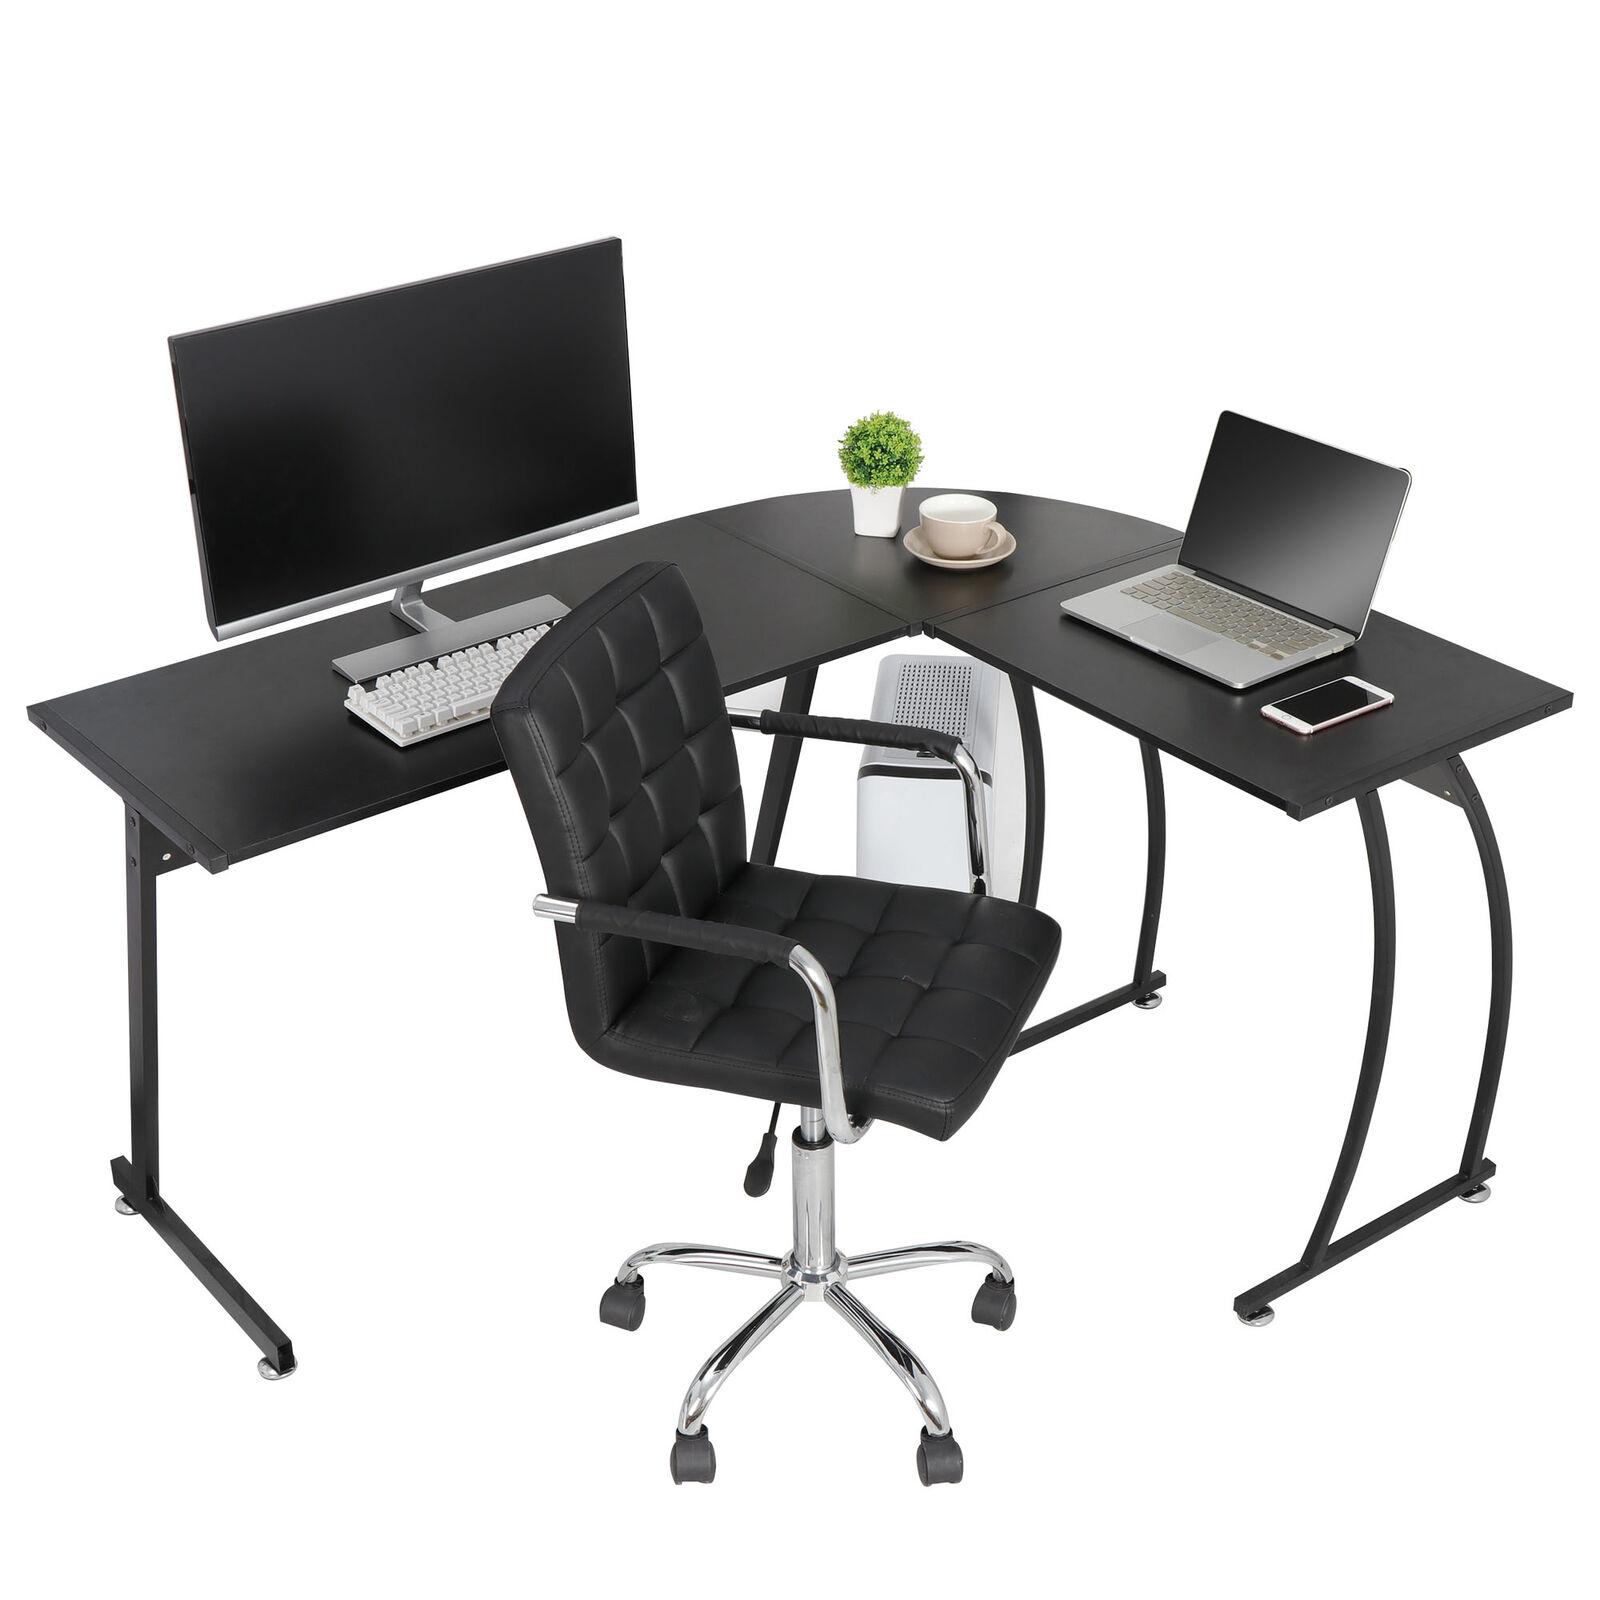 L-Shaped Corner Desk Computer Gaming Desk PC Table Writting